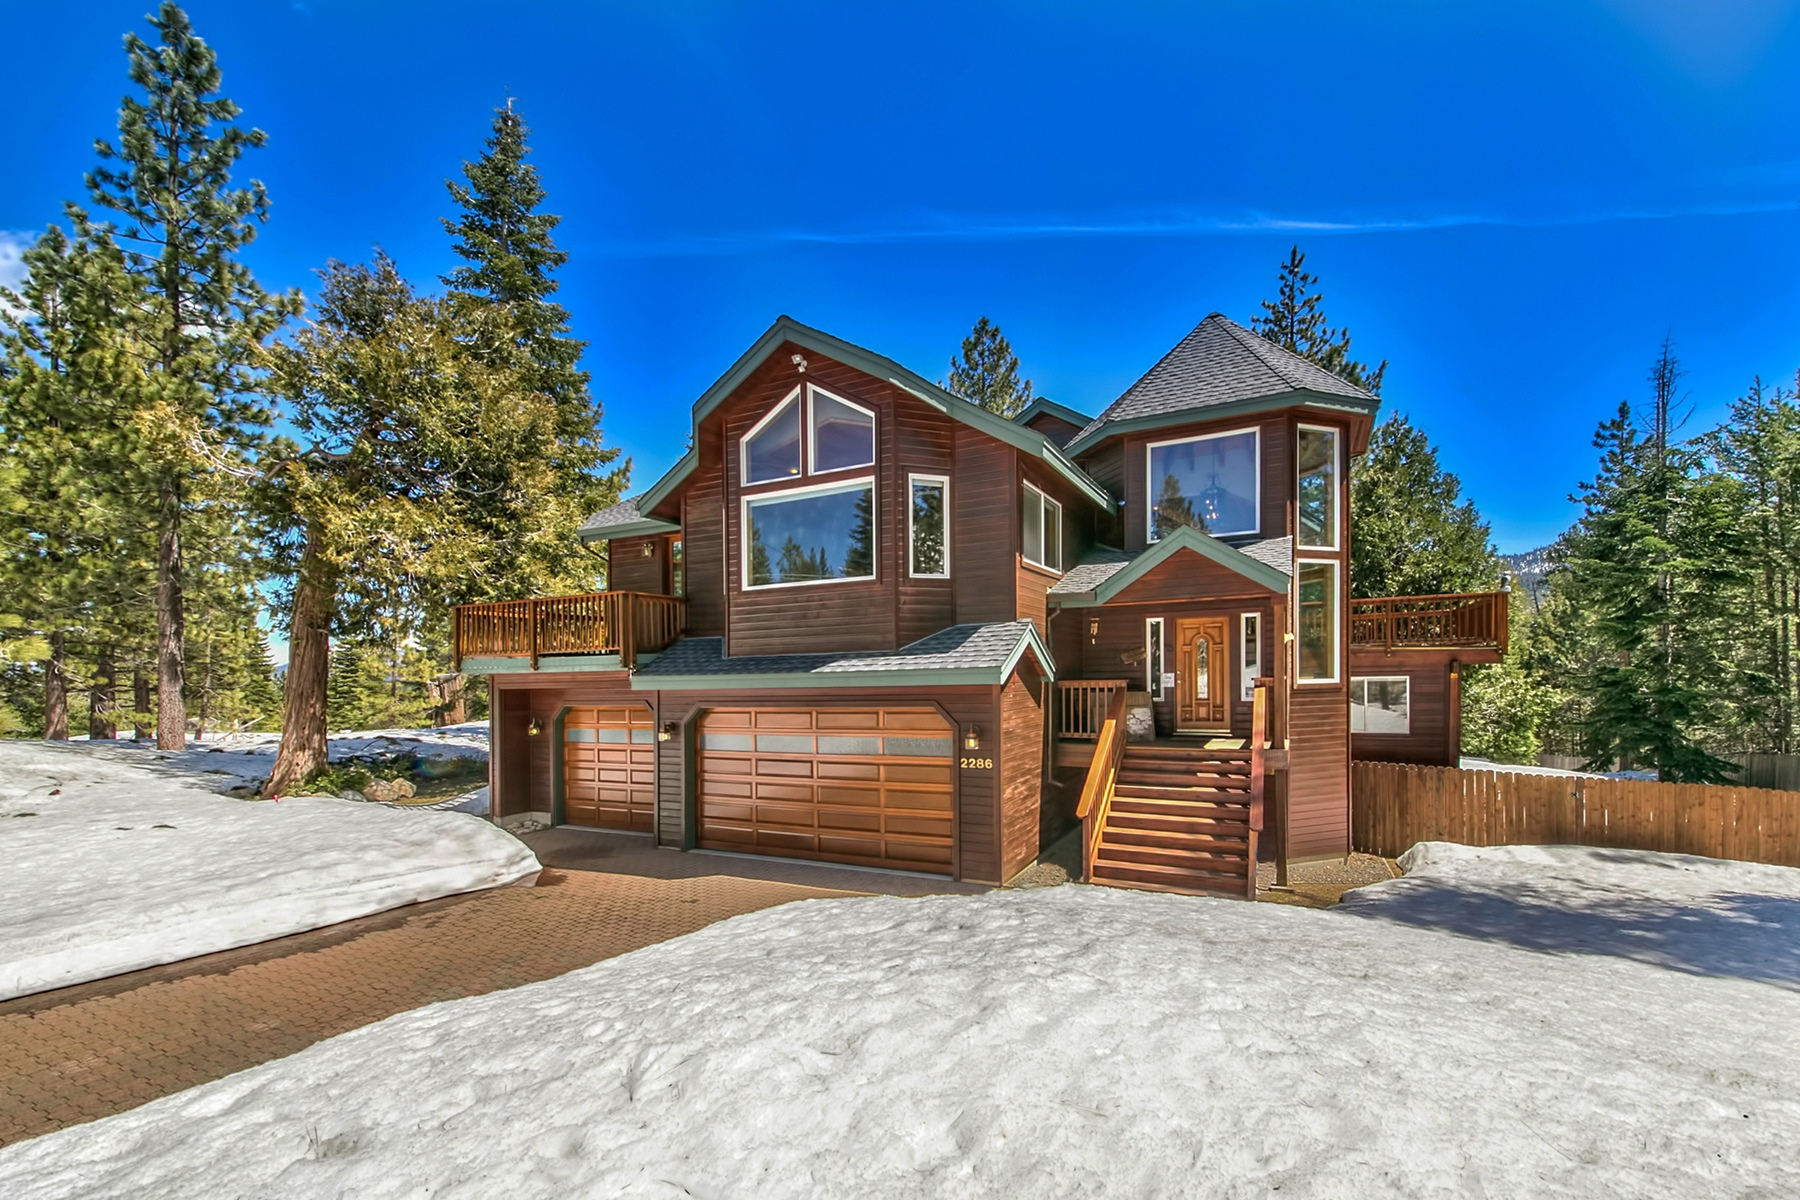 Casa Unifamiliar por un Venta en 2286 Chiapa Drive, South Lake Tahoe, California 96150 South Lake Tahoe, California, 96150 Lake Tahoe, Estados Unidos